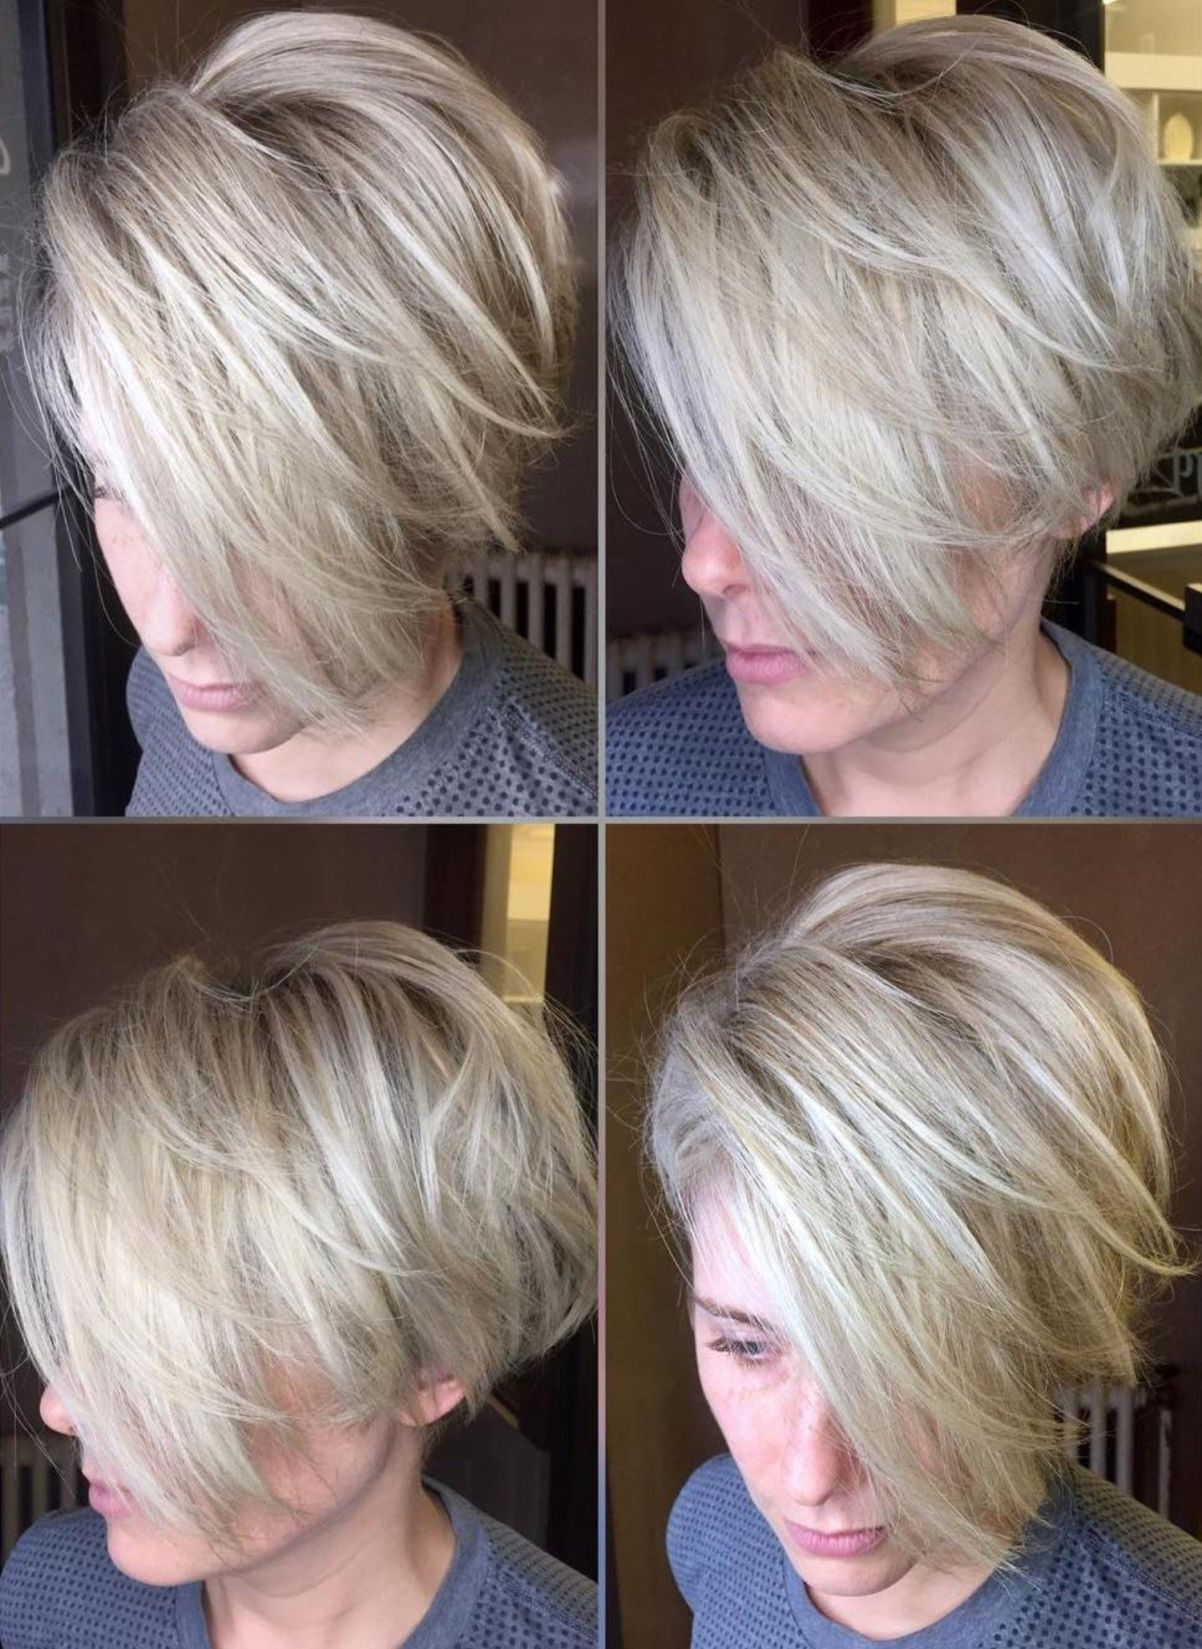 70 Cute And Easy To Style Short Layered Hairstyles Short Hair With Layers Layered Hair Short Hair Styles